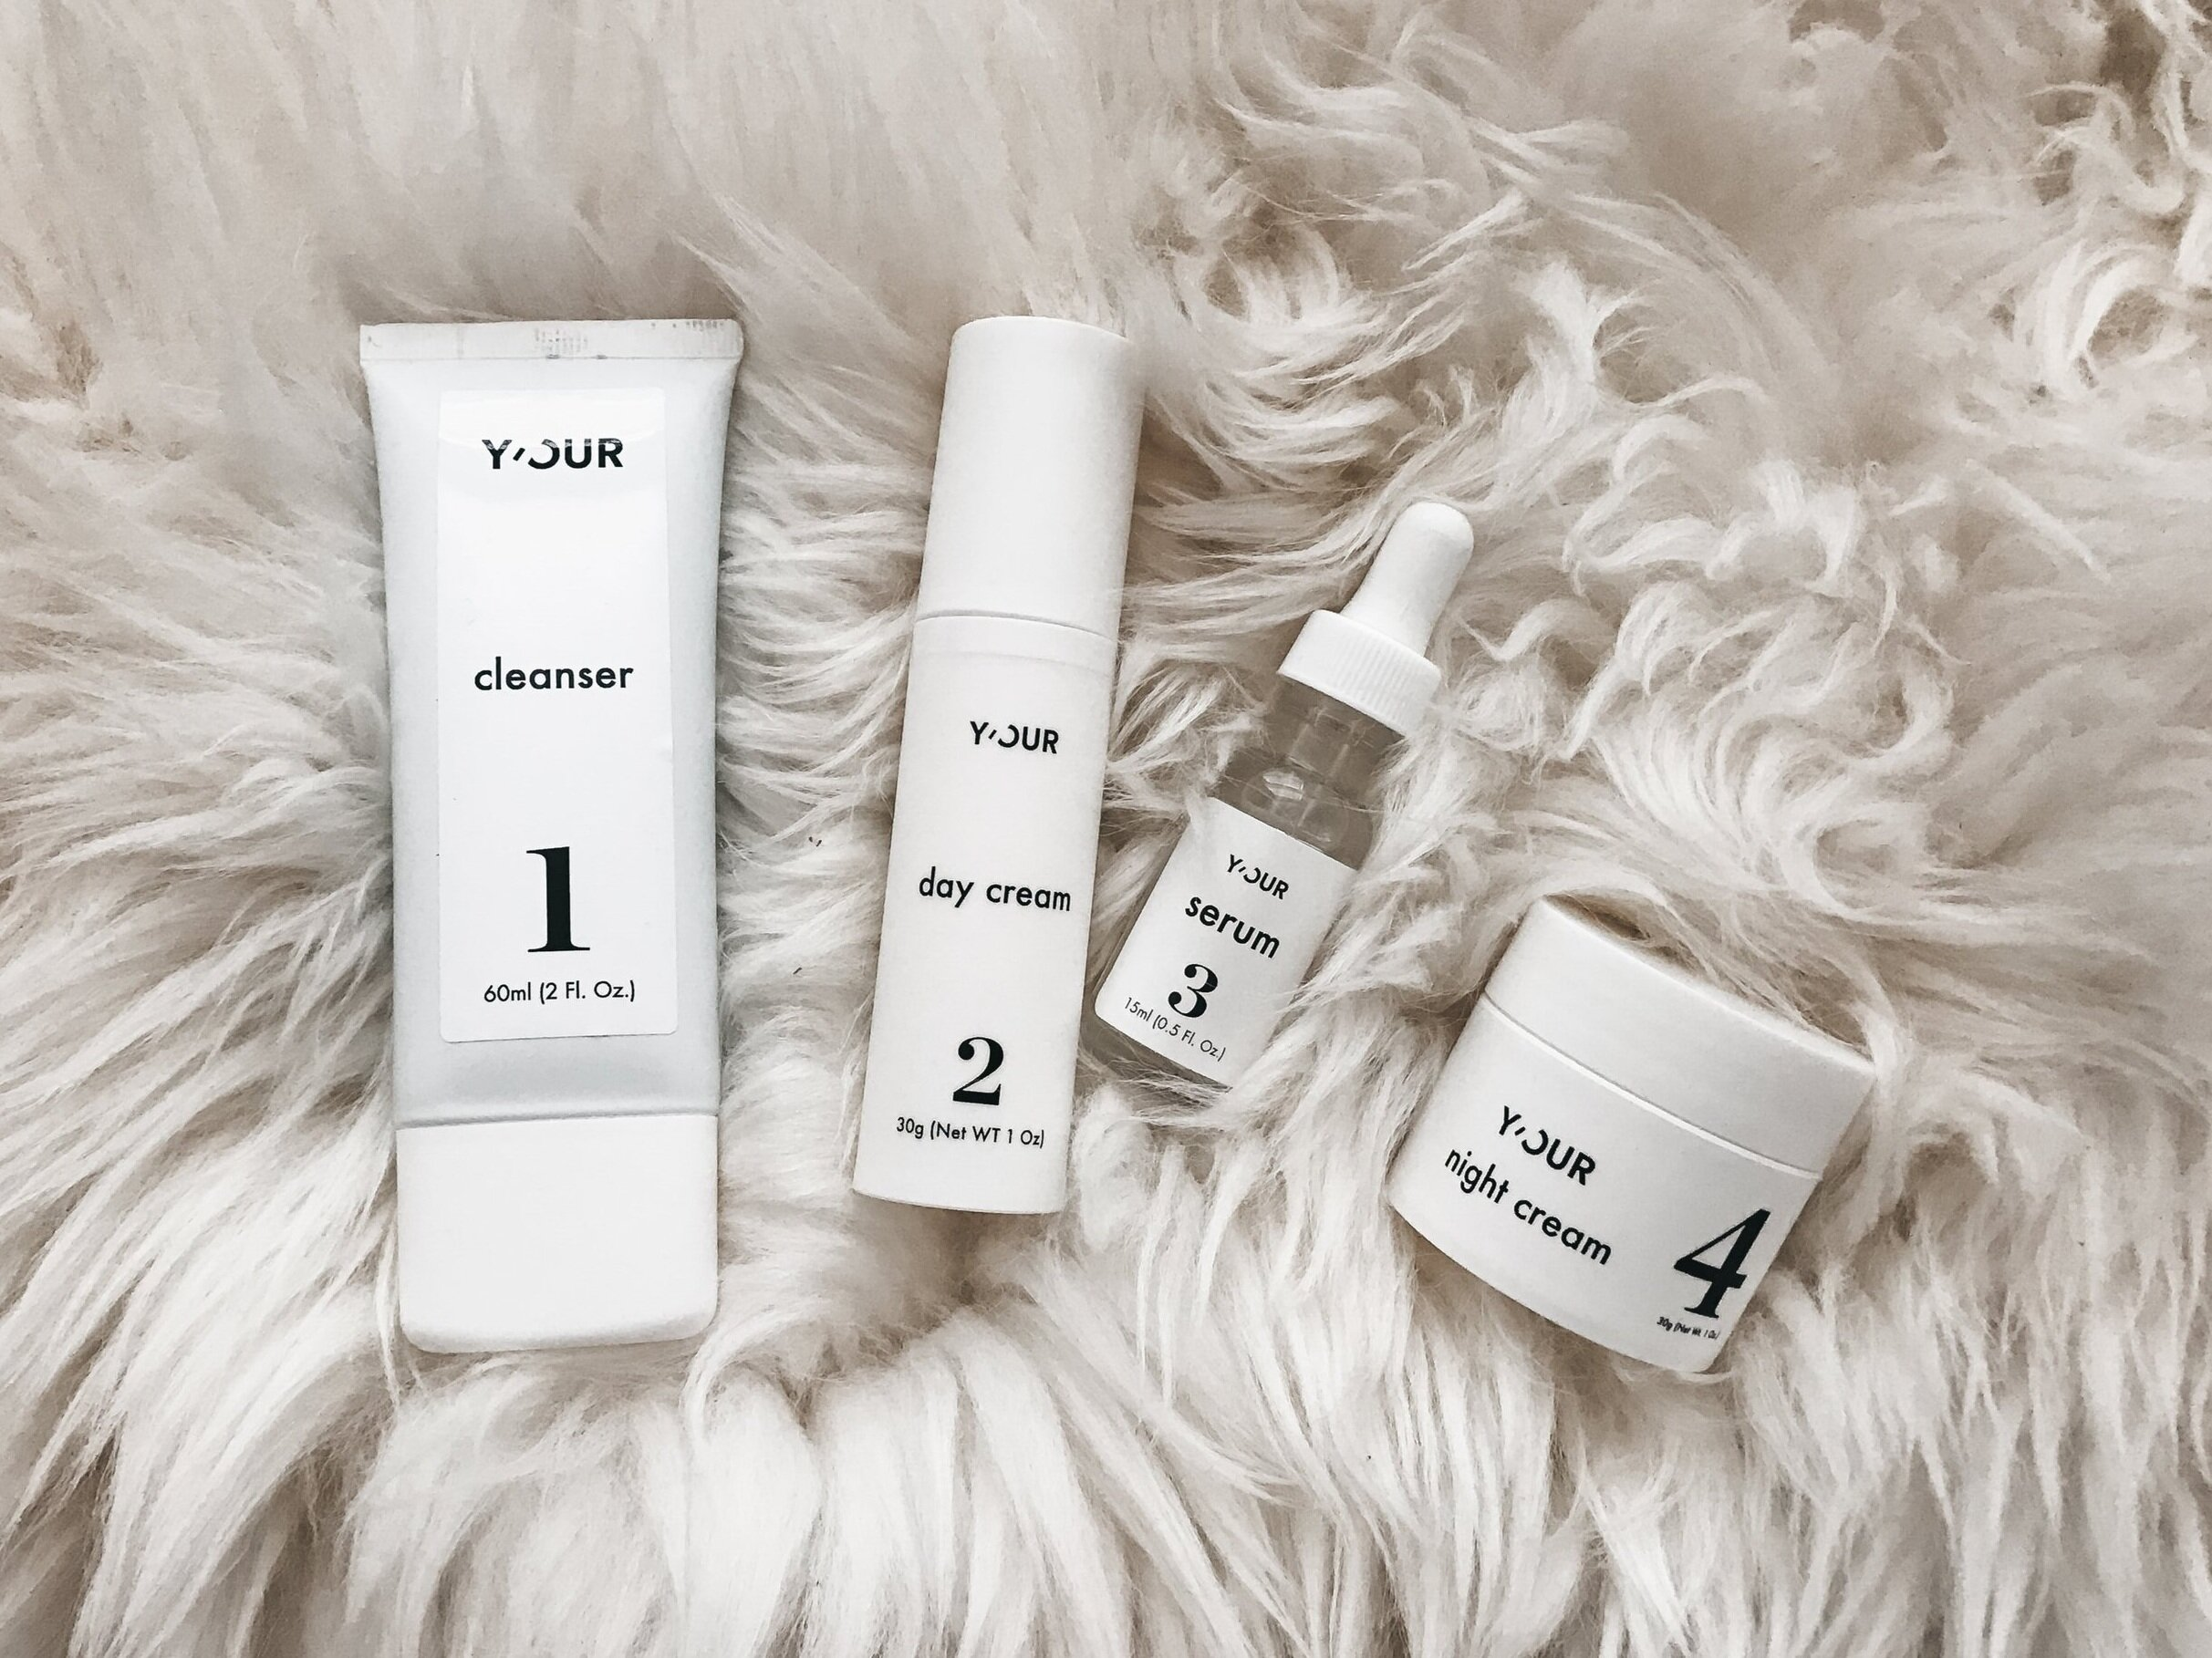 Disclosure : I was gifted with Y'OUR Personalized Skincare to provide my review. All thoughts and opinions are own. This post is NOT sponsored.